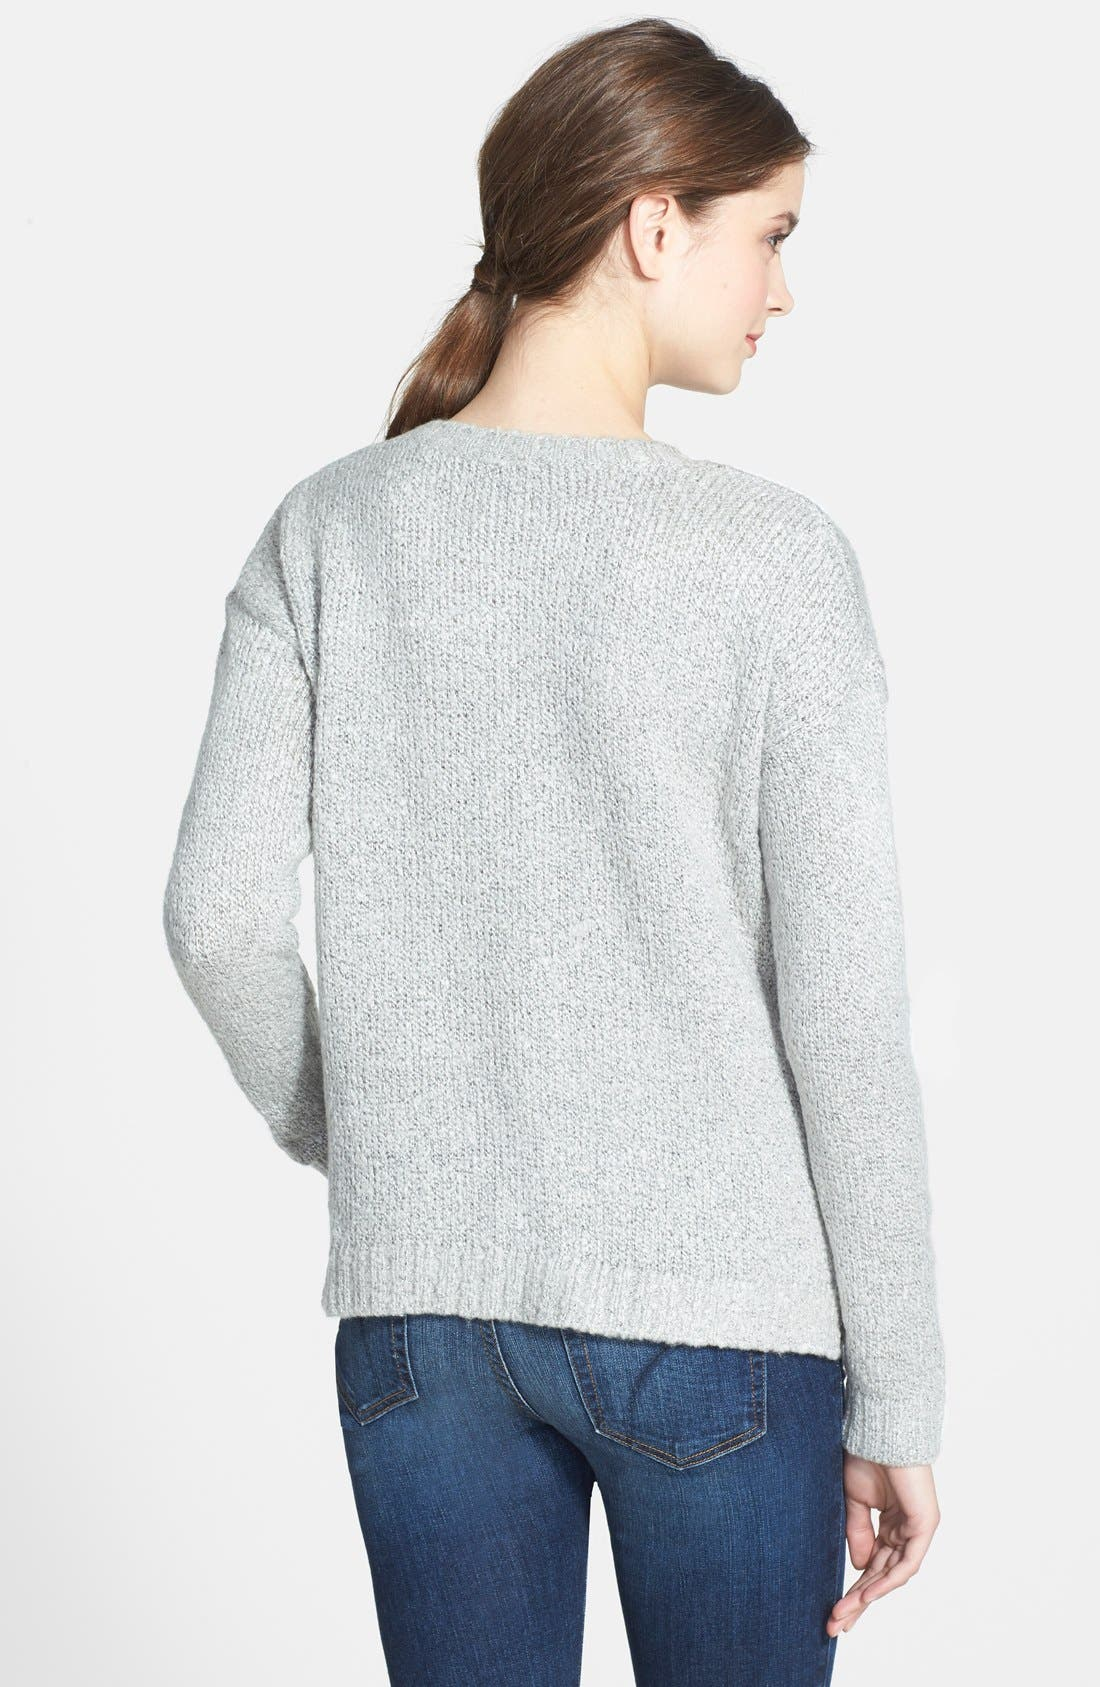 'Sheep' Fuzzy Knit Sweater,                             Alternate thumbnail 2, color,                             073